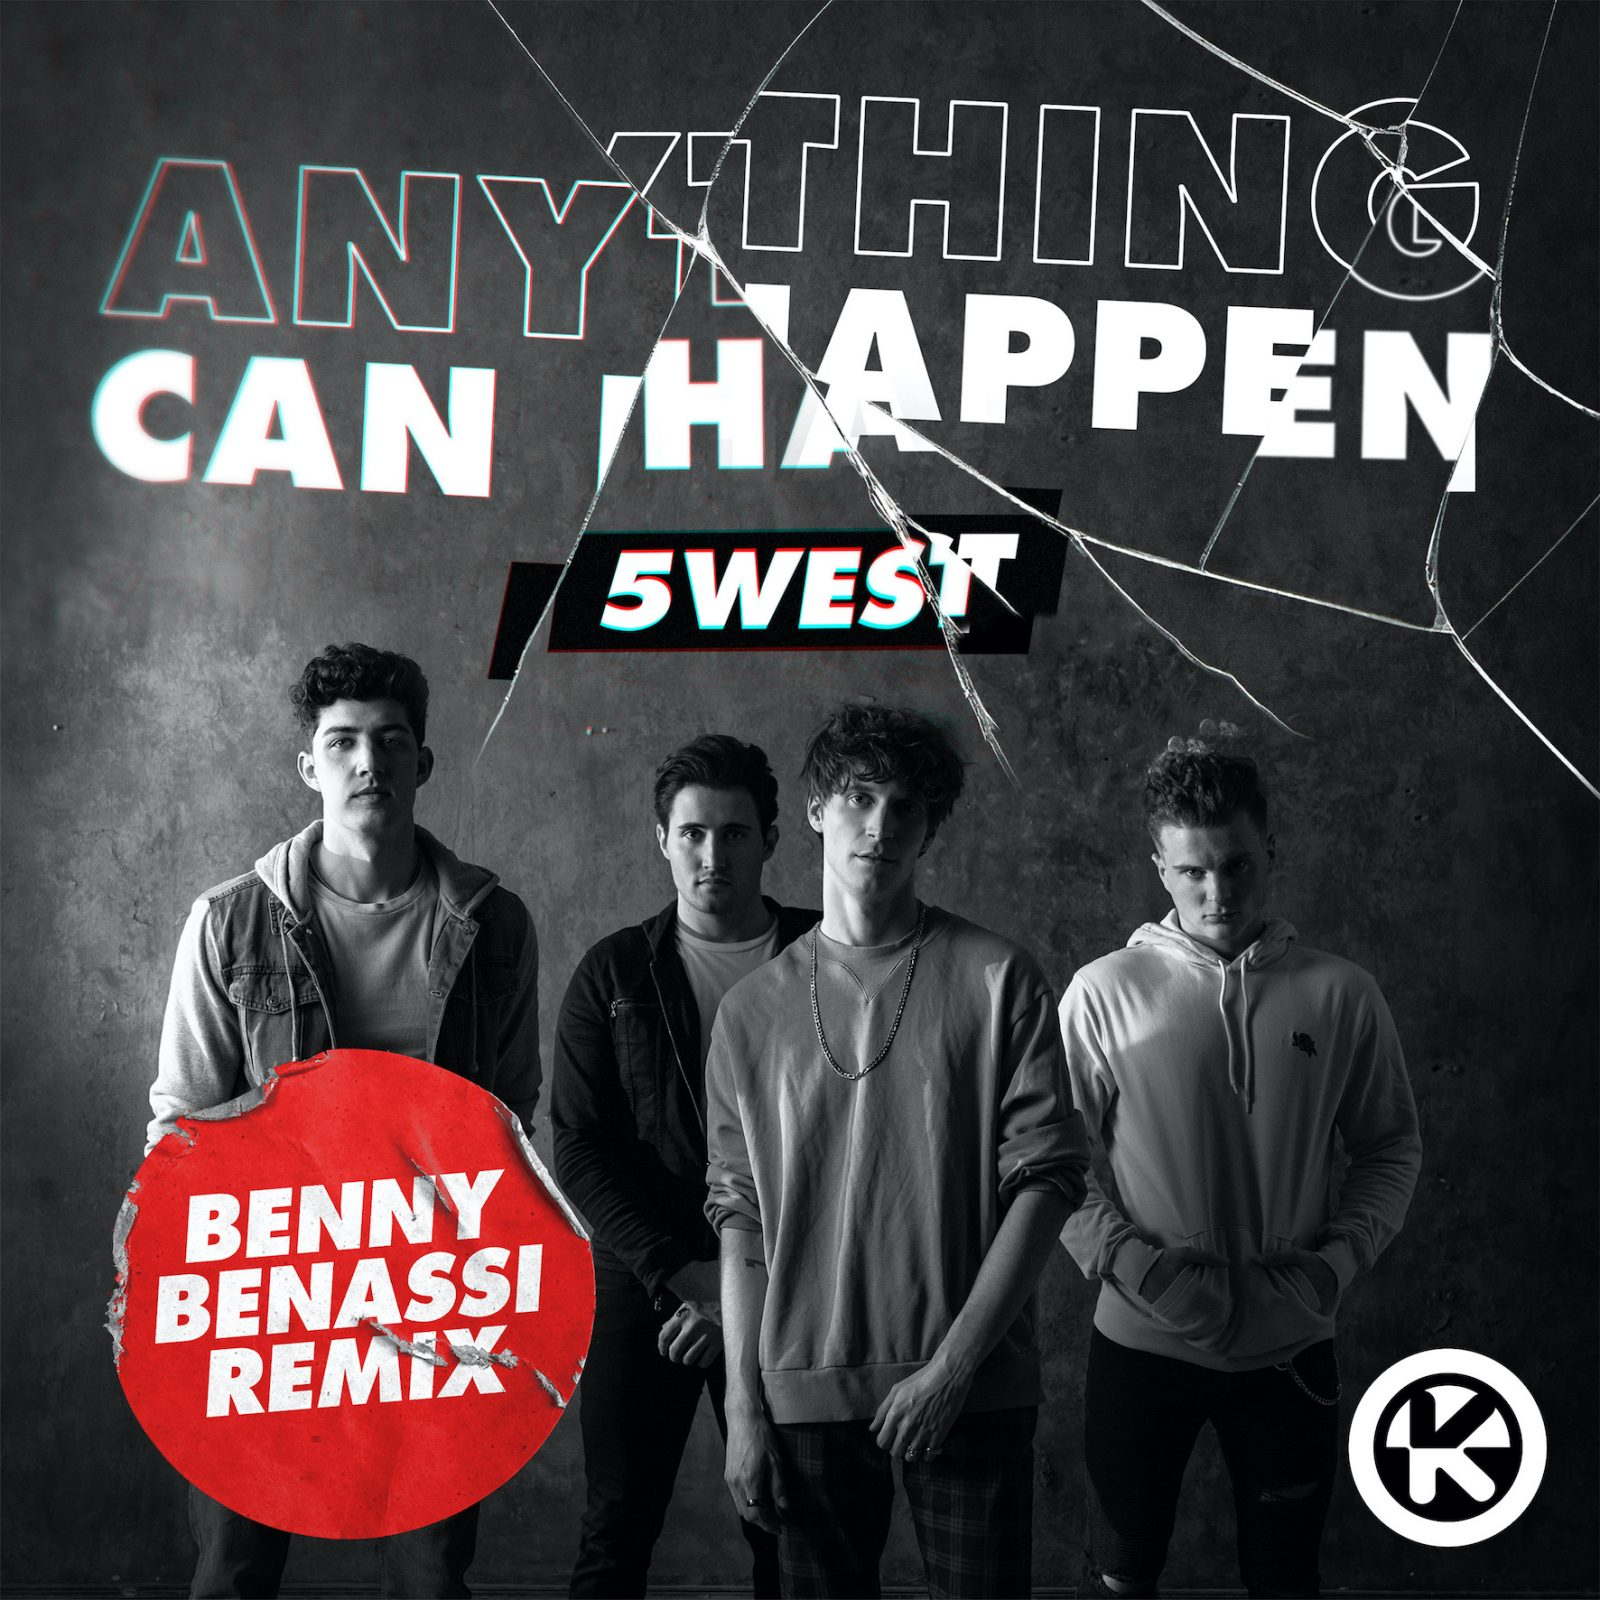 """5 WEST """"ANYTHING CAN HAPPEN (BENNY BENASSI REMIX)"""""""